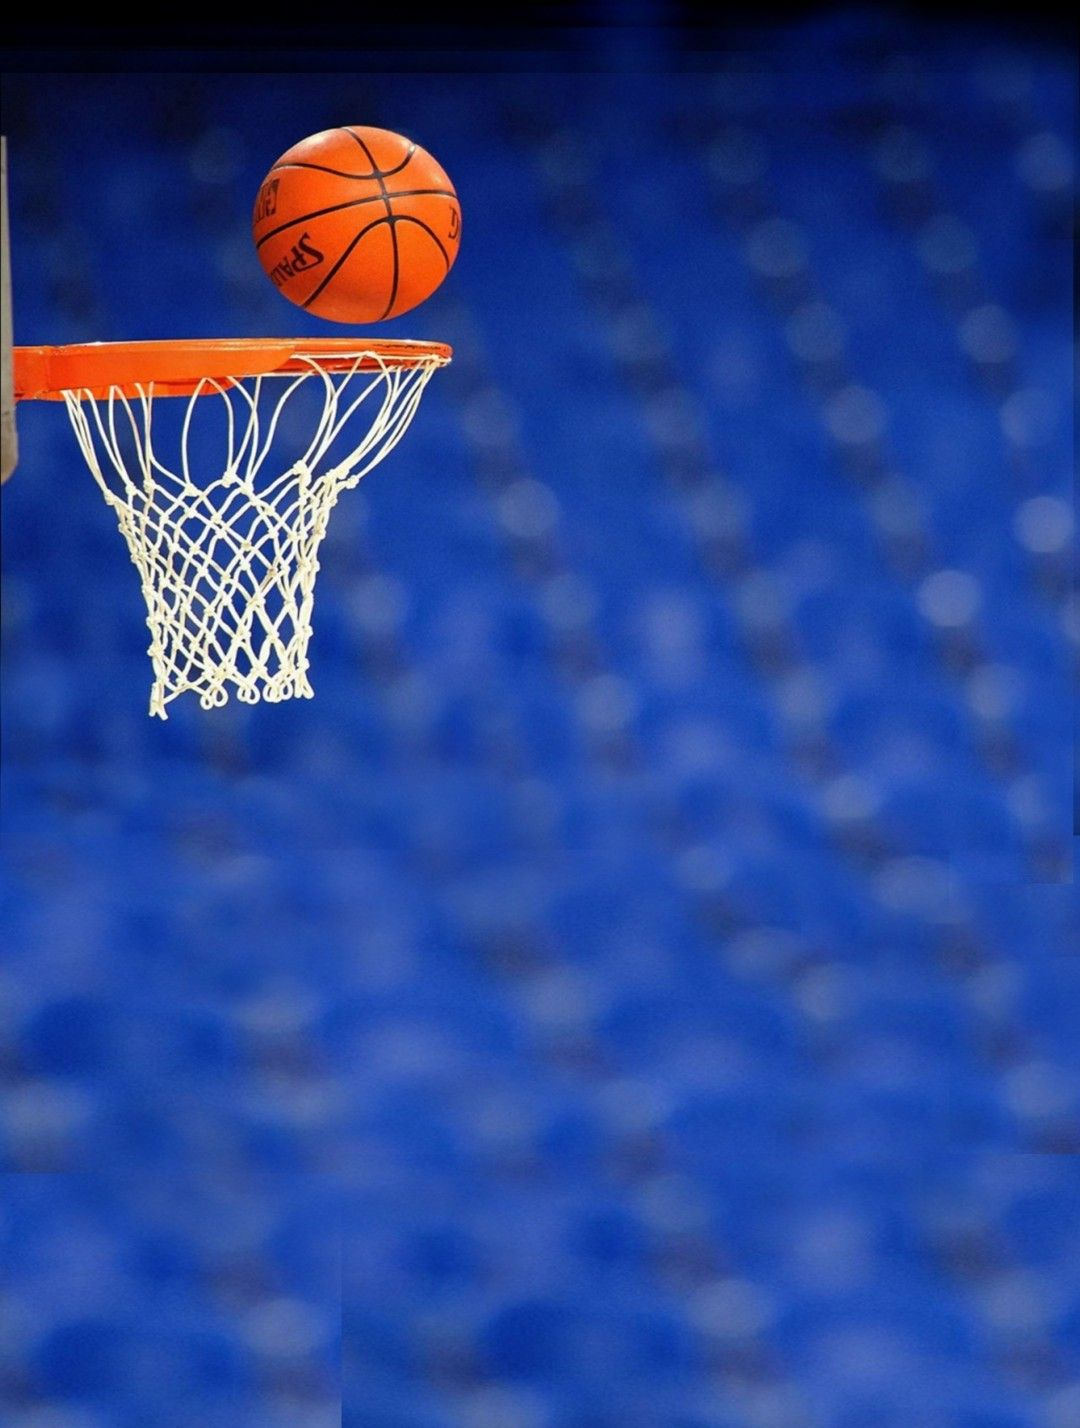 Basketball Goal Sports Backdrop 1 Basketball wallpapers